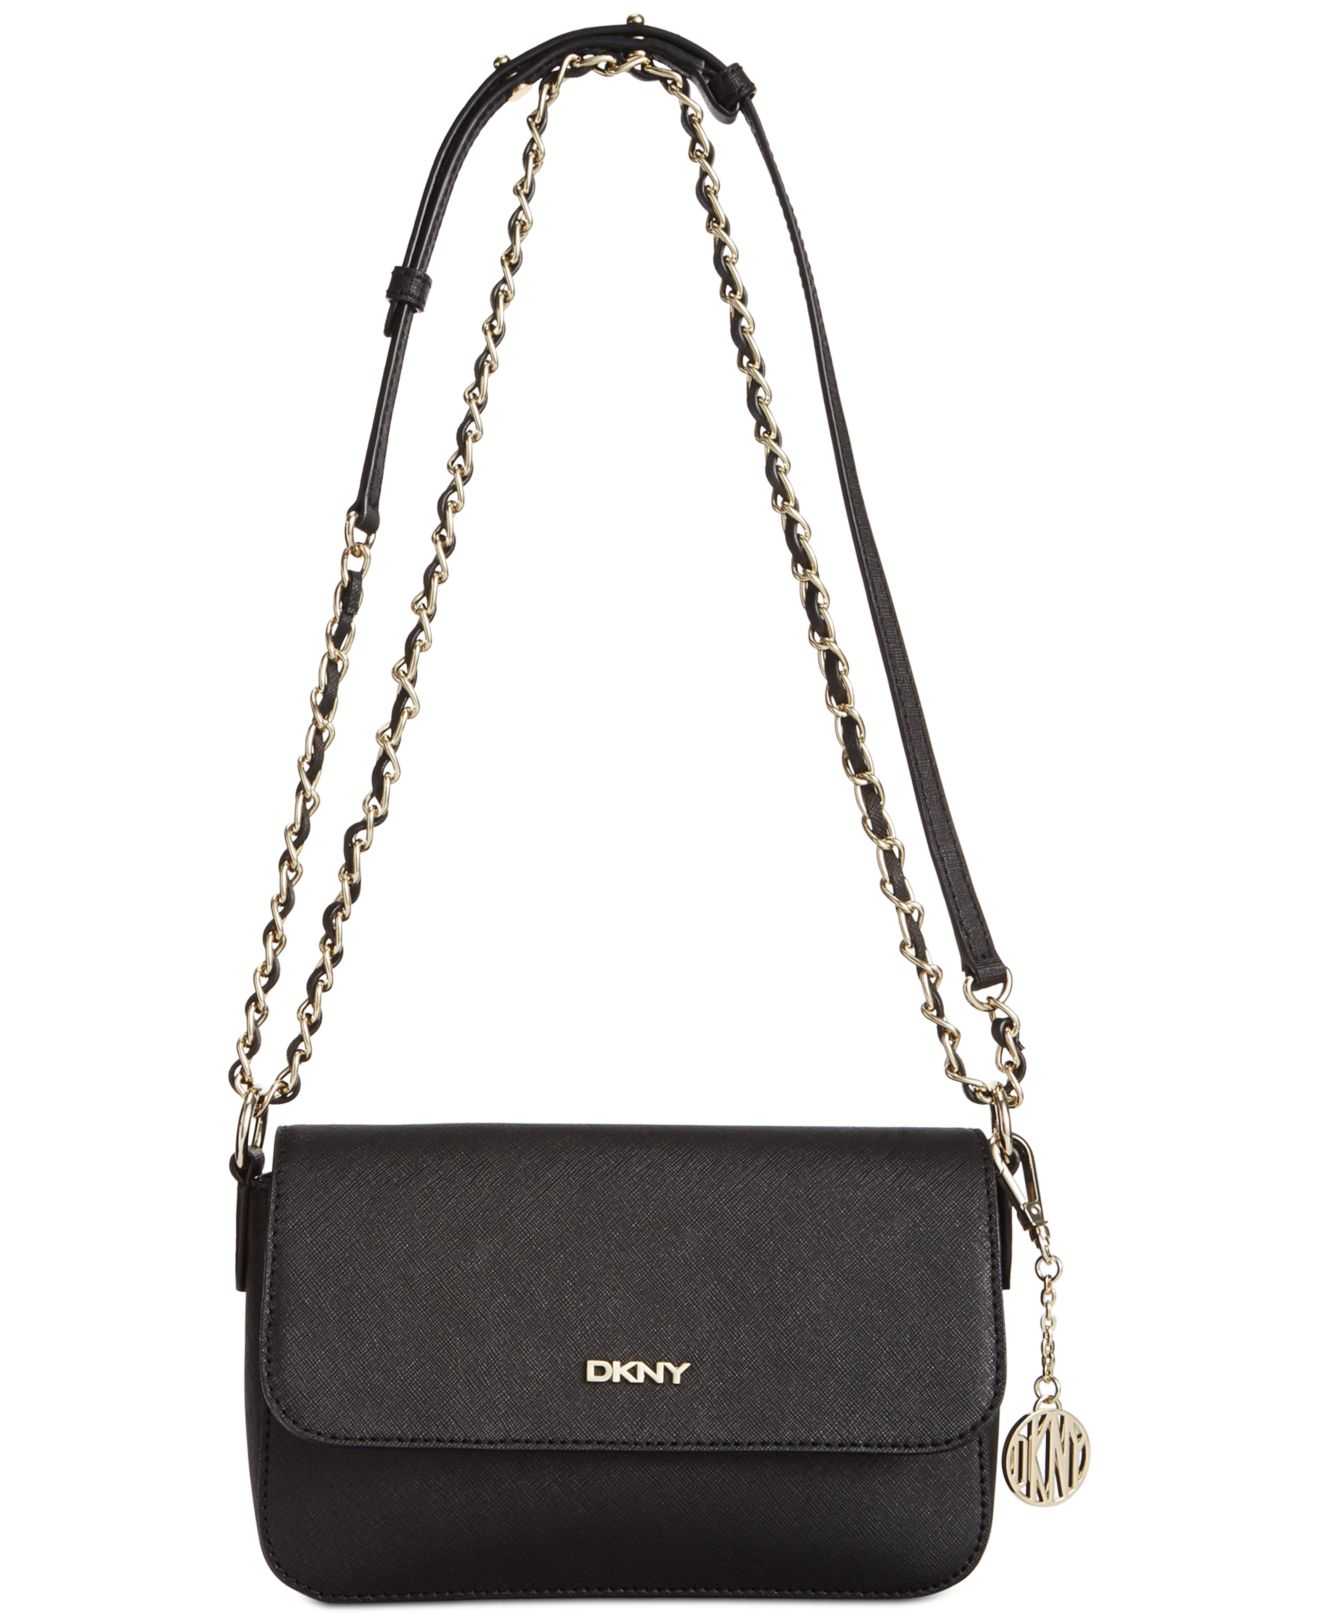 dkny bryant park small flap crossbody in black lyst. Black Bedroom Furniture Sets. Home Design Ideas